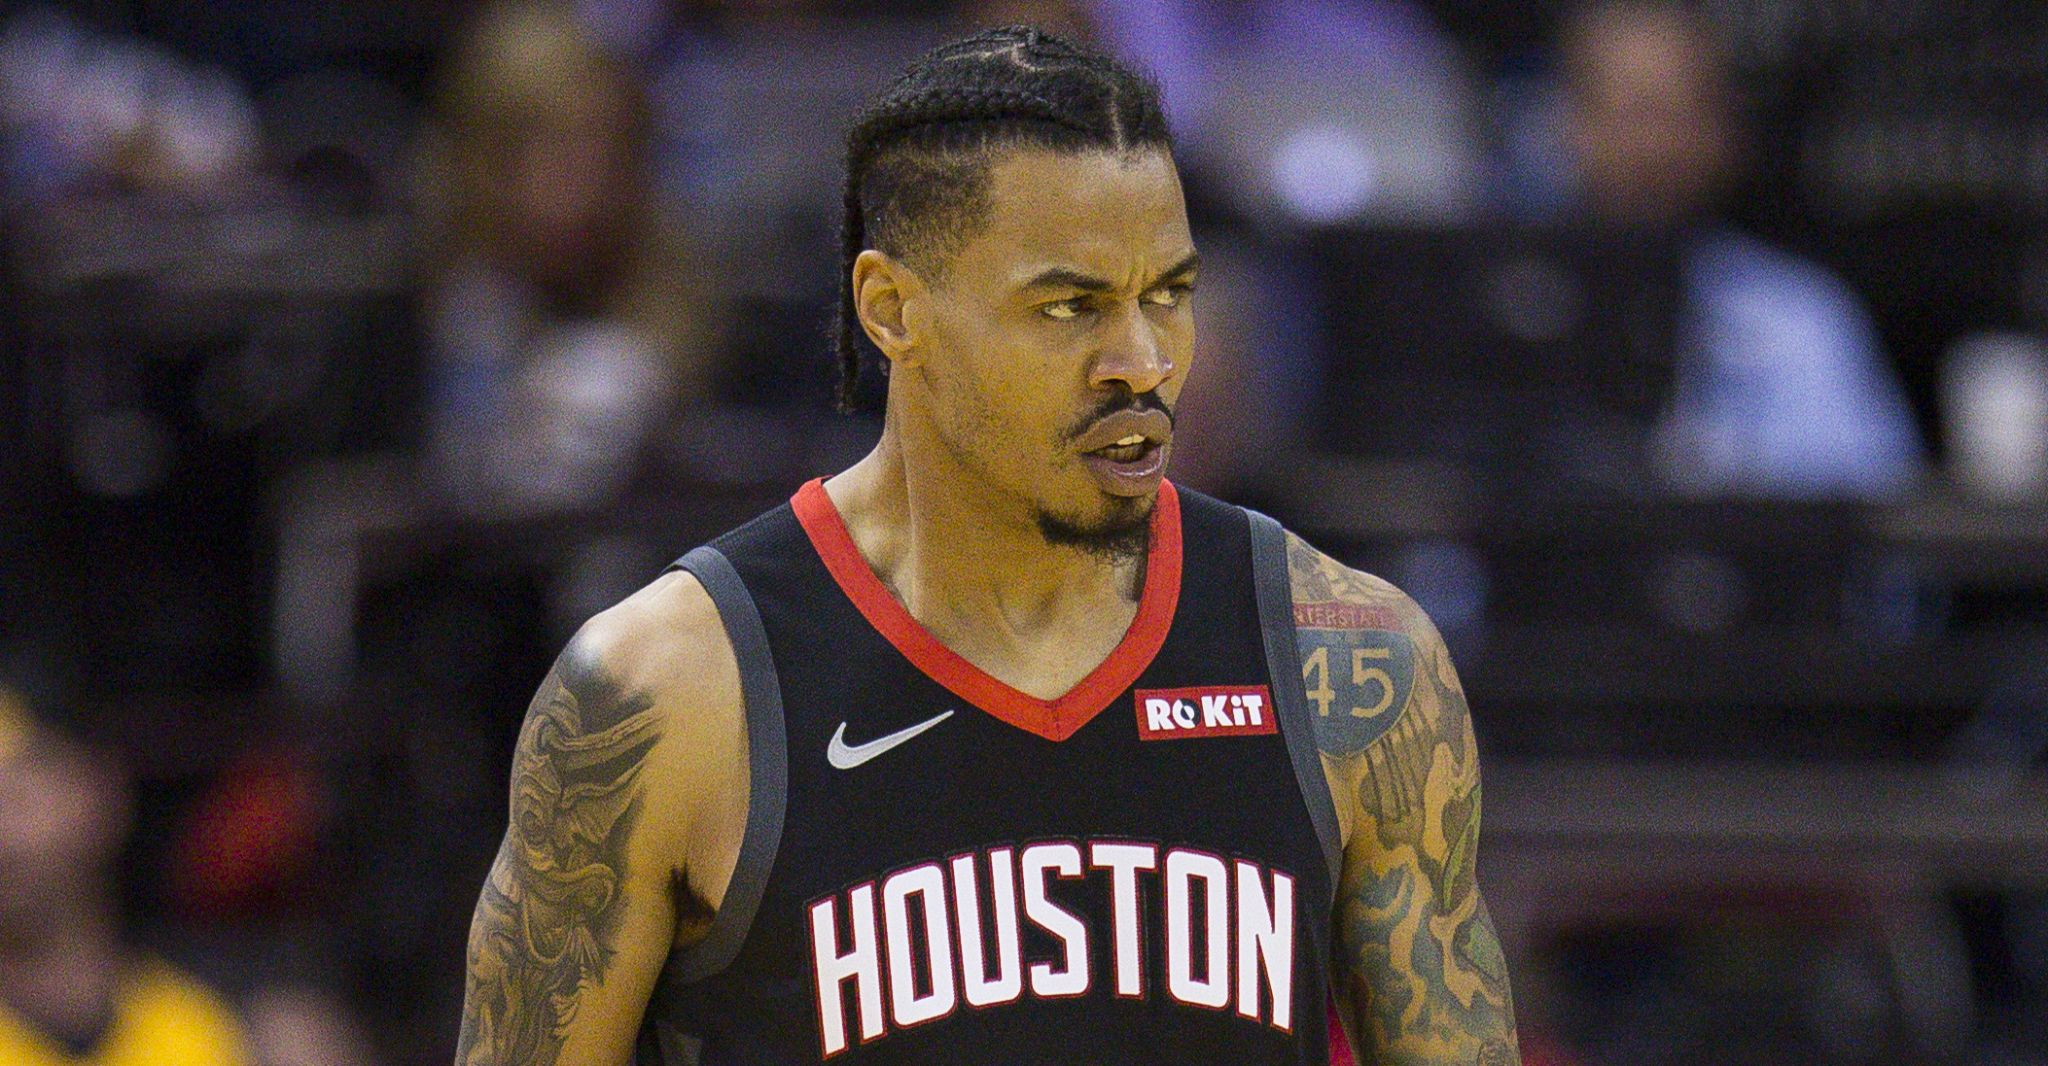 Rockets' Gerald Green likely to miss 2-3 months